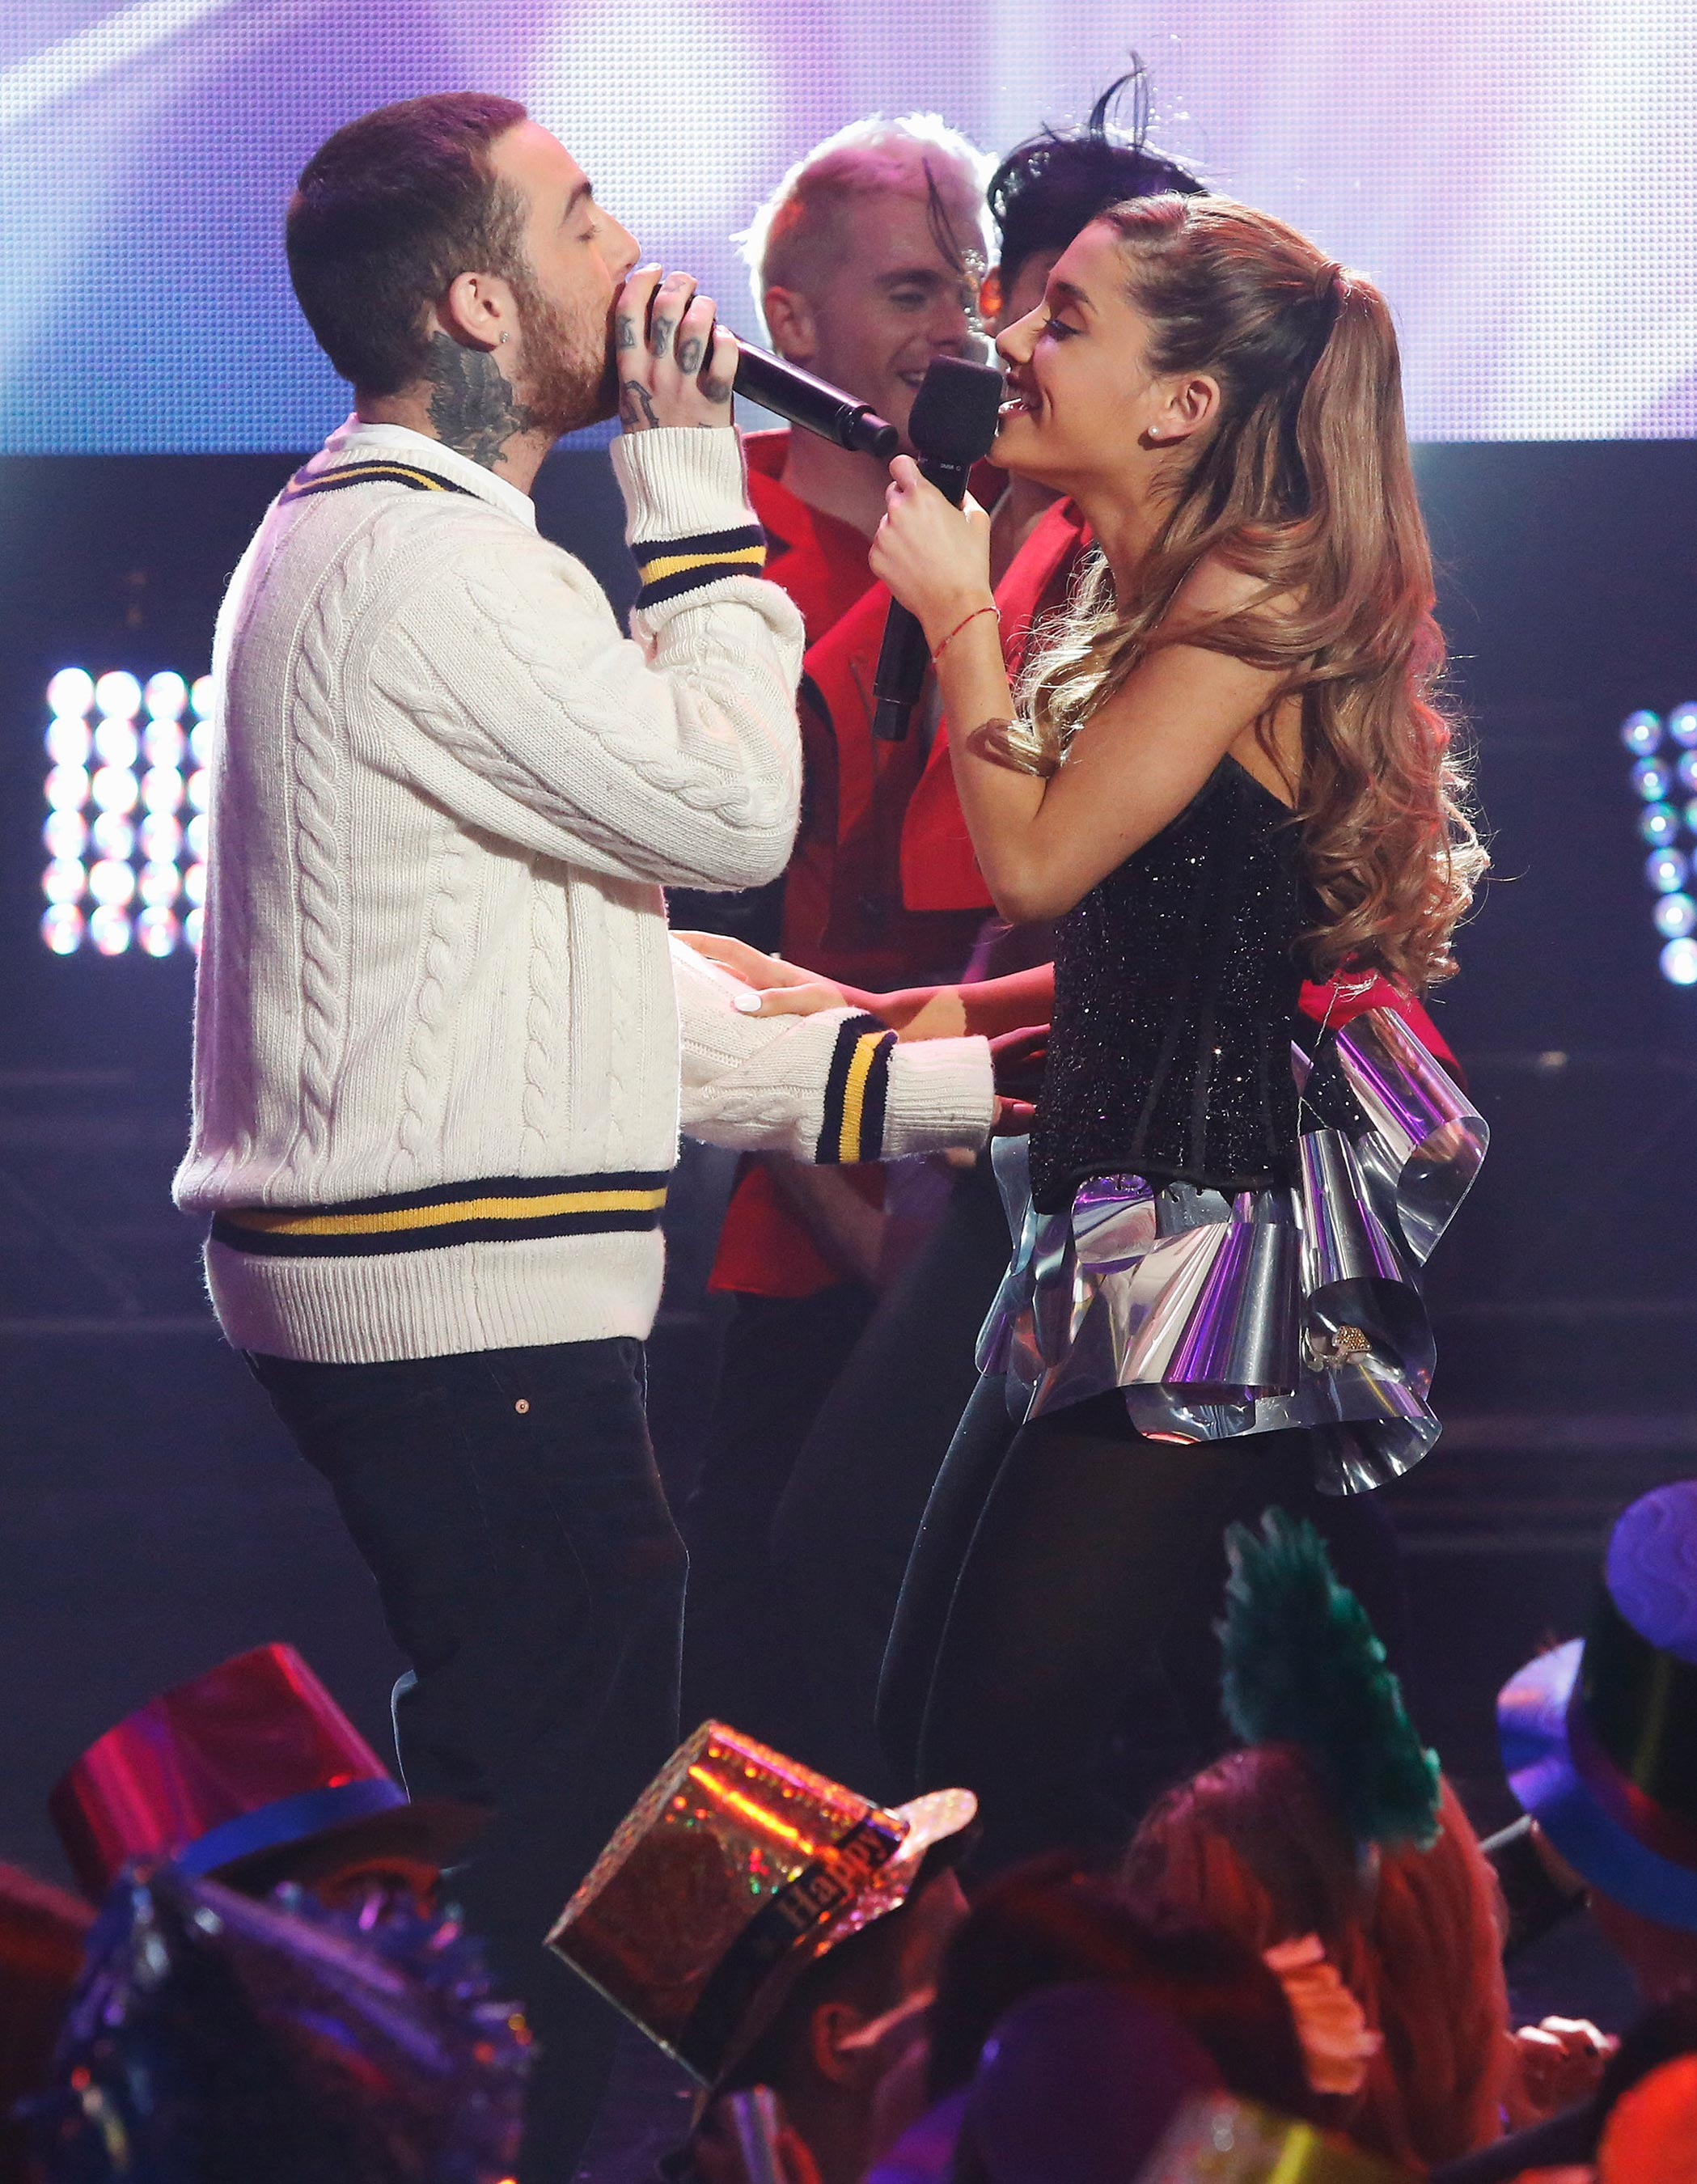 Ariana Grande Sex Tape Porn ariana grande sex tape with mac miller leaked! | prothots